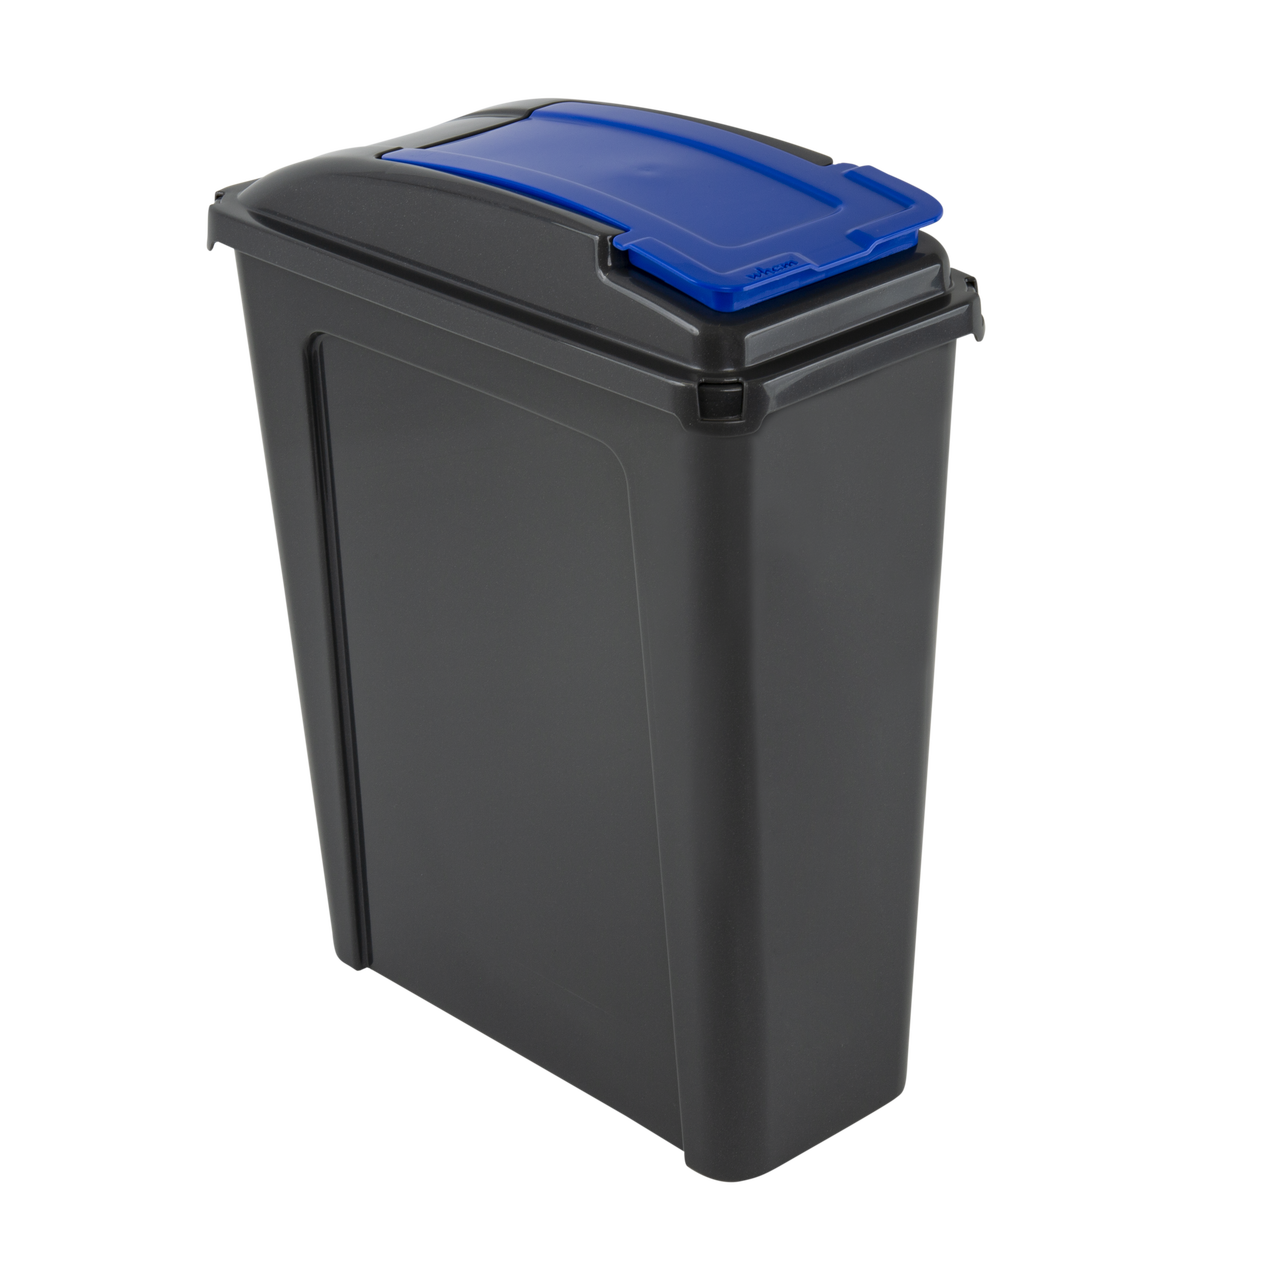 Wham 25 Litre Recycling / Pet Food Storage Bin - Blue & Graphite, Pet Food Containers by Dog In A Box